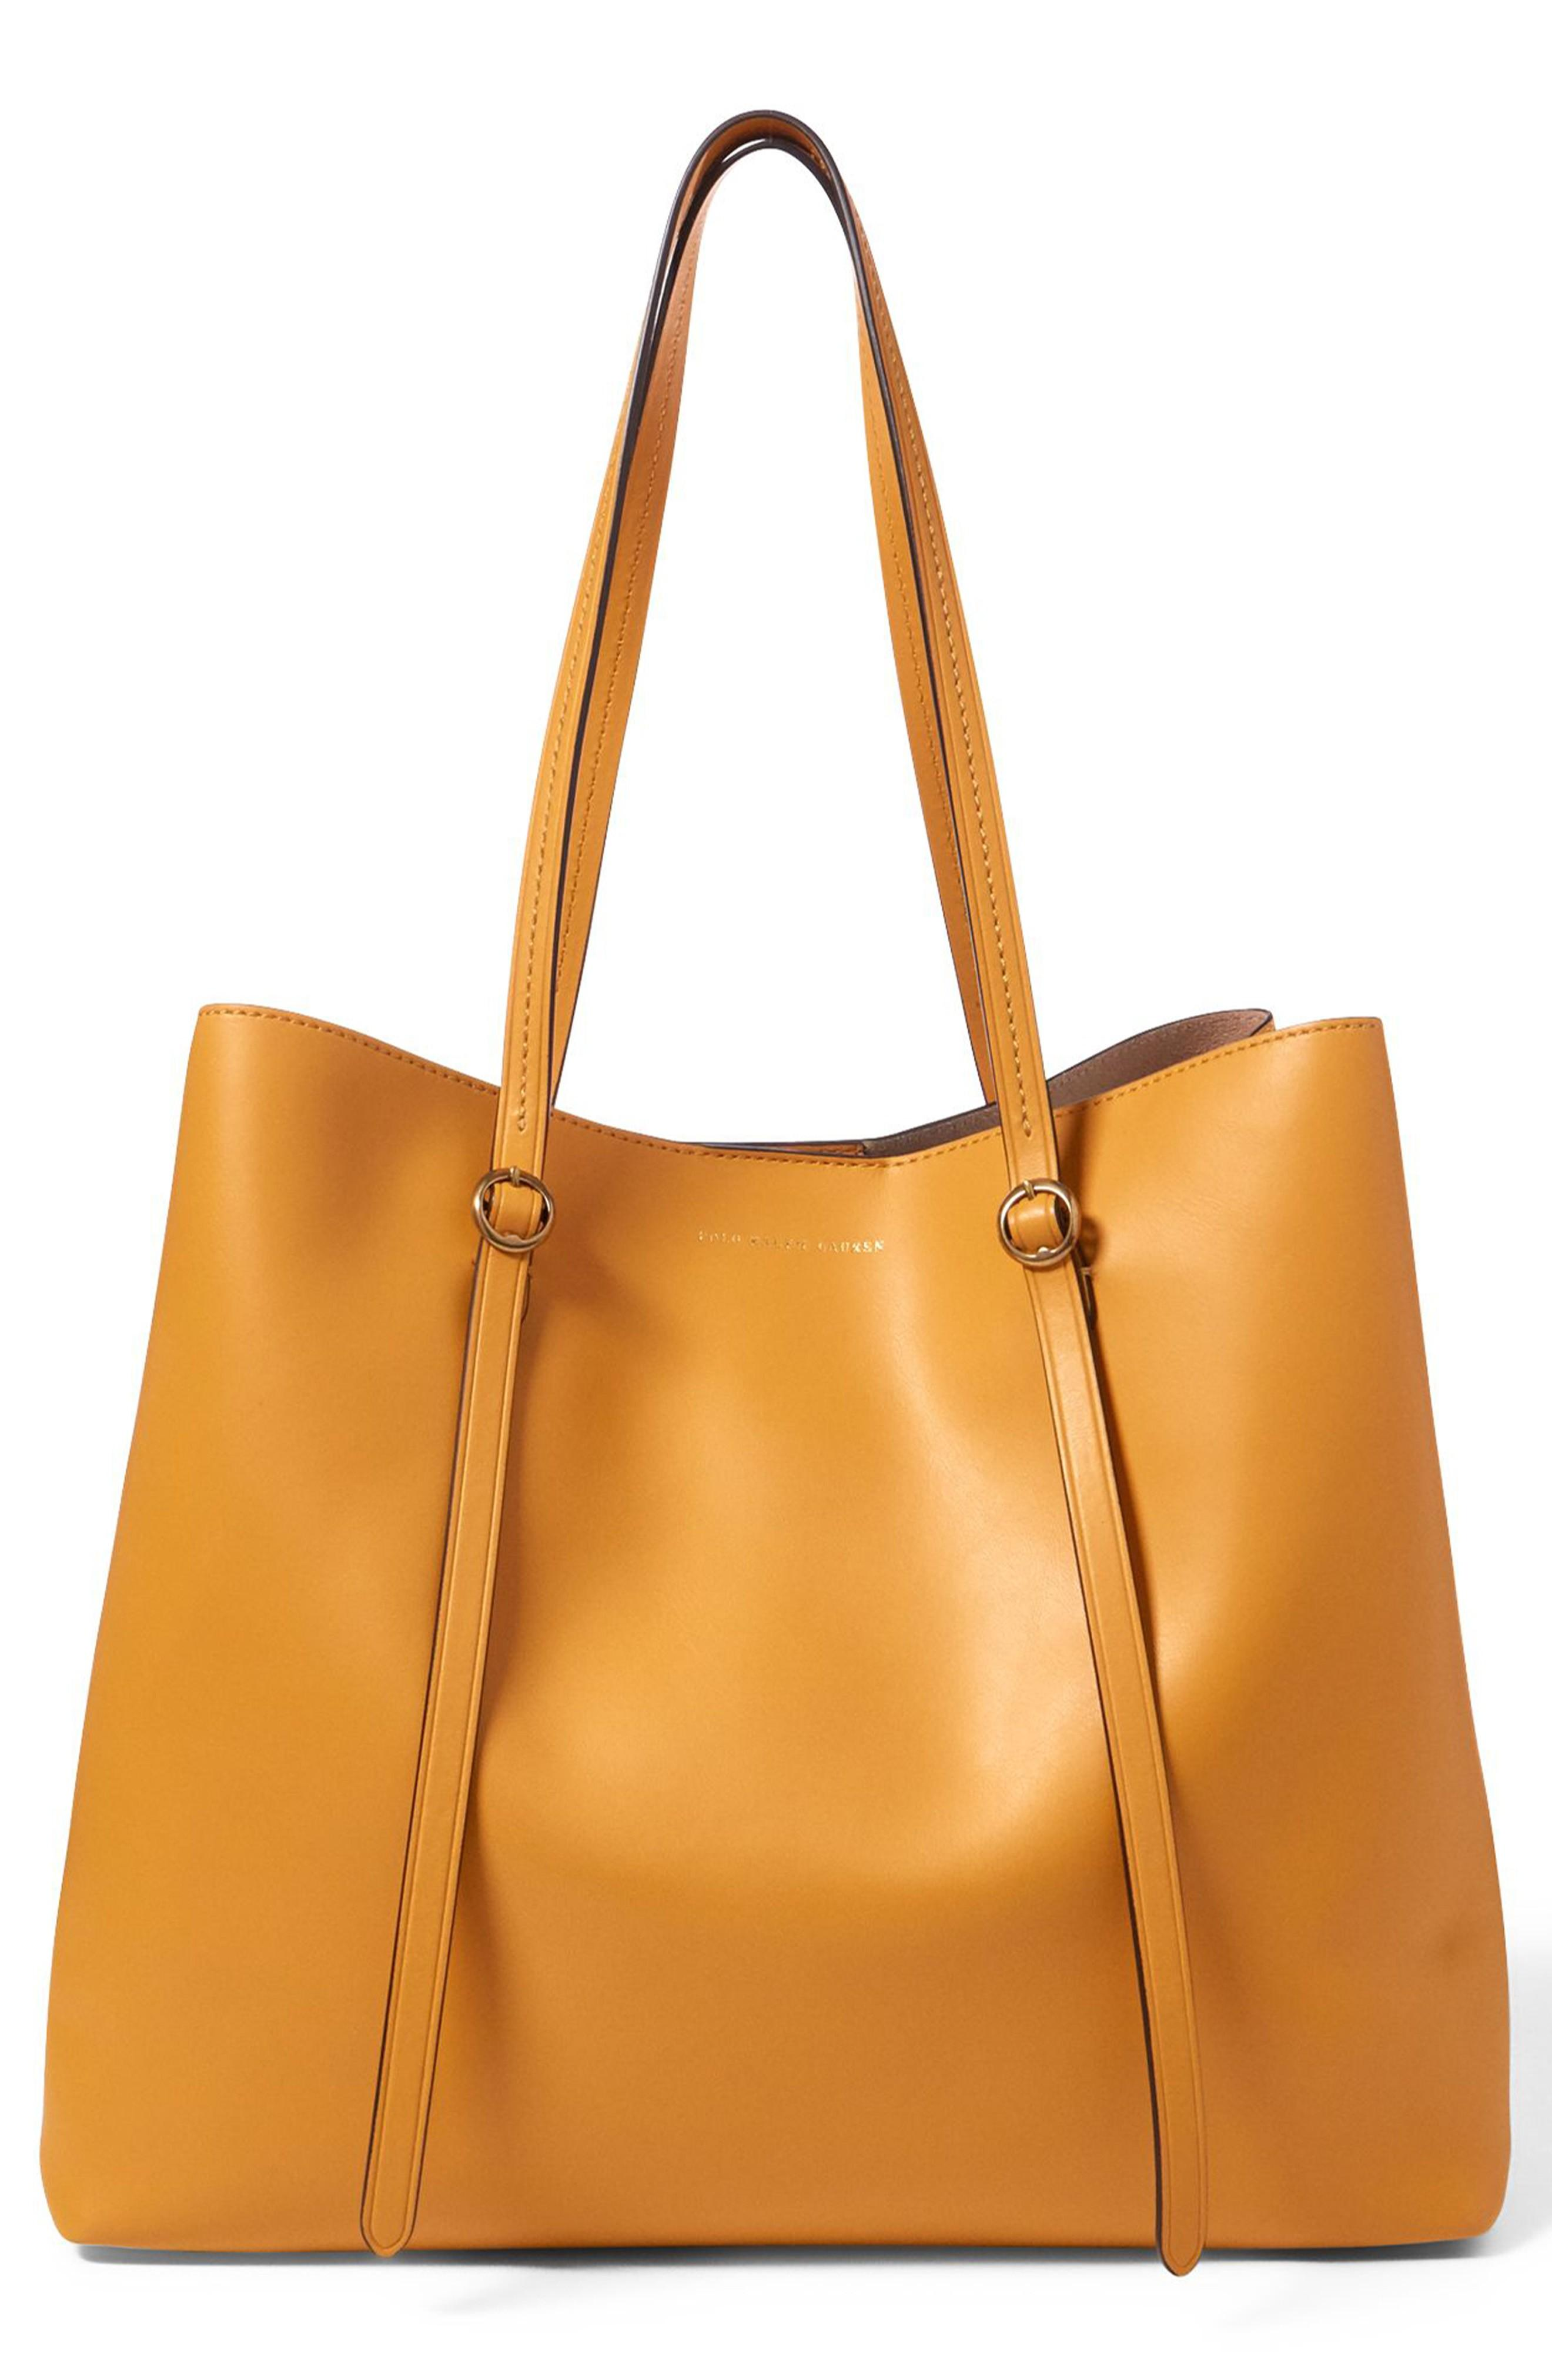 Polo Ralph Lauren Lennox Leather Tote - Yellow In Ochre